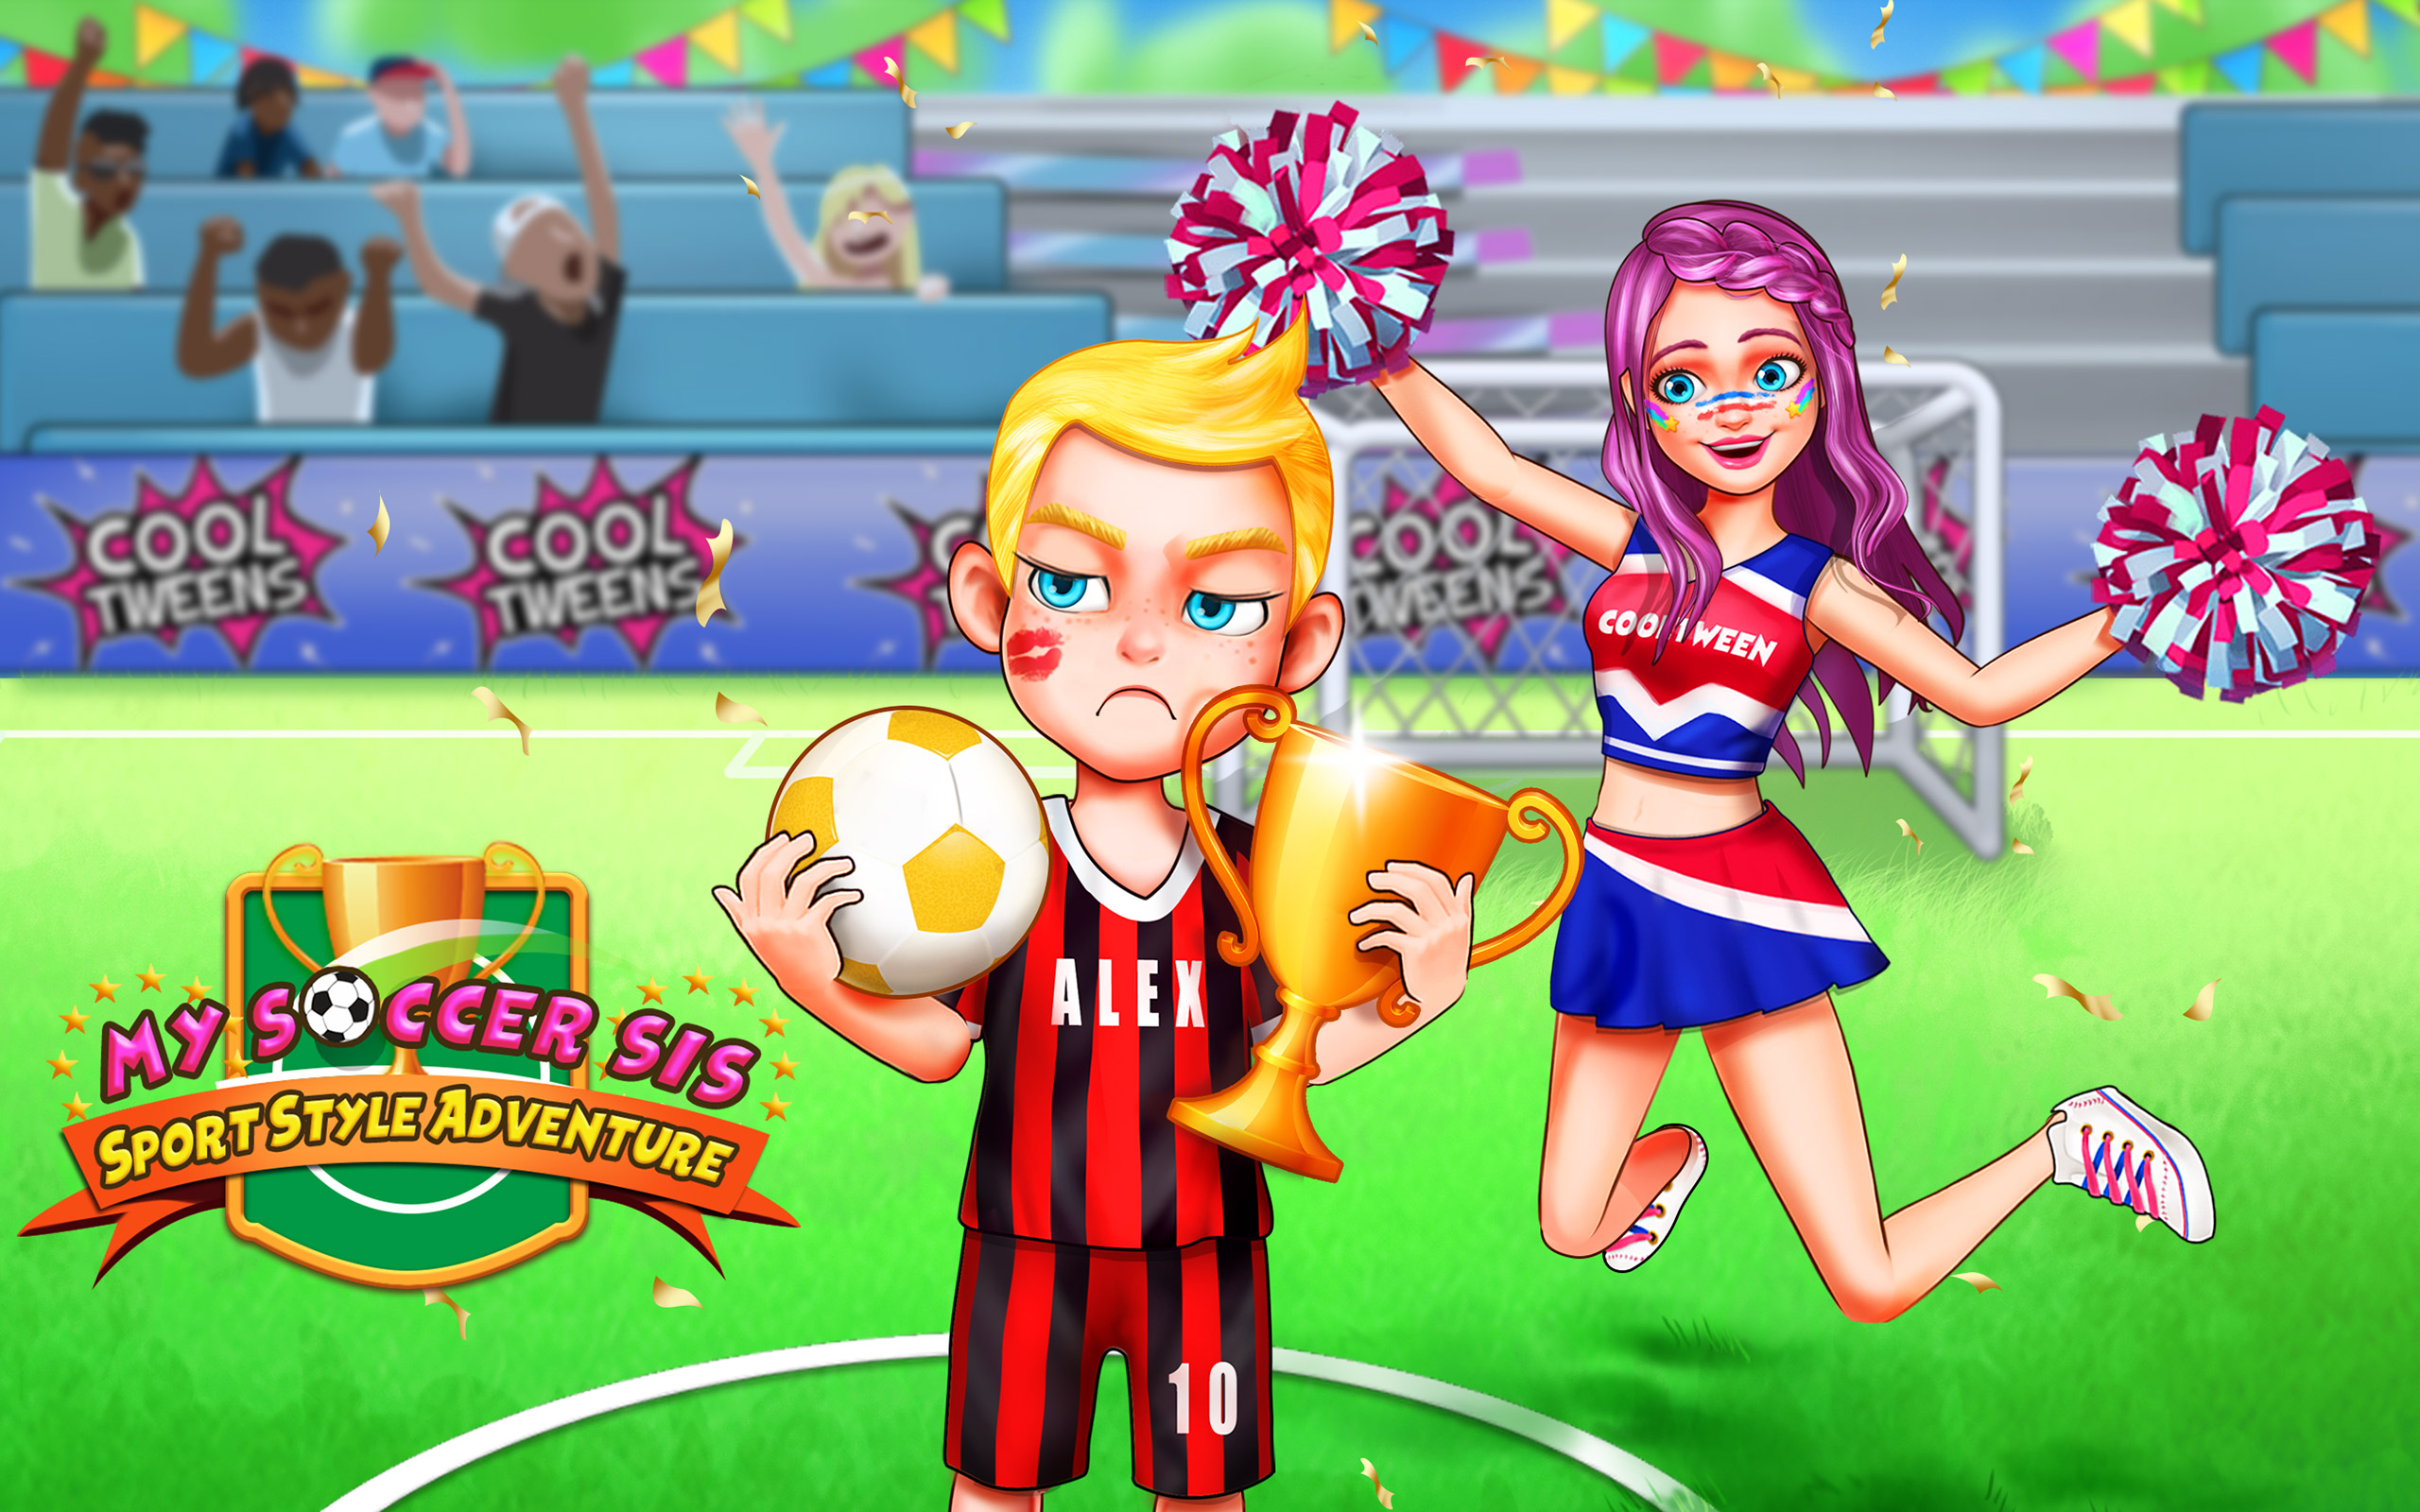 Soccer Day with Sister - Play Sports: Amazon.es: Appstore para Android